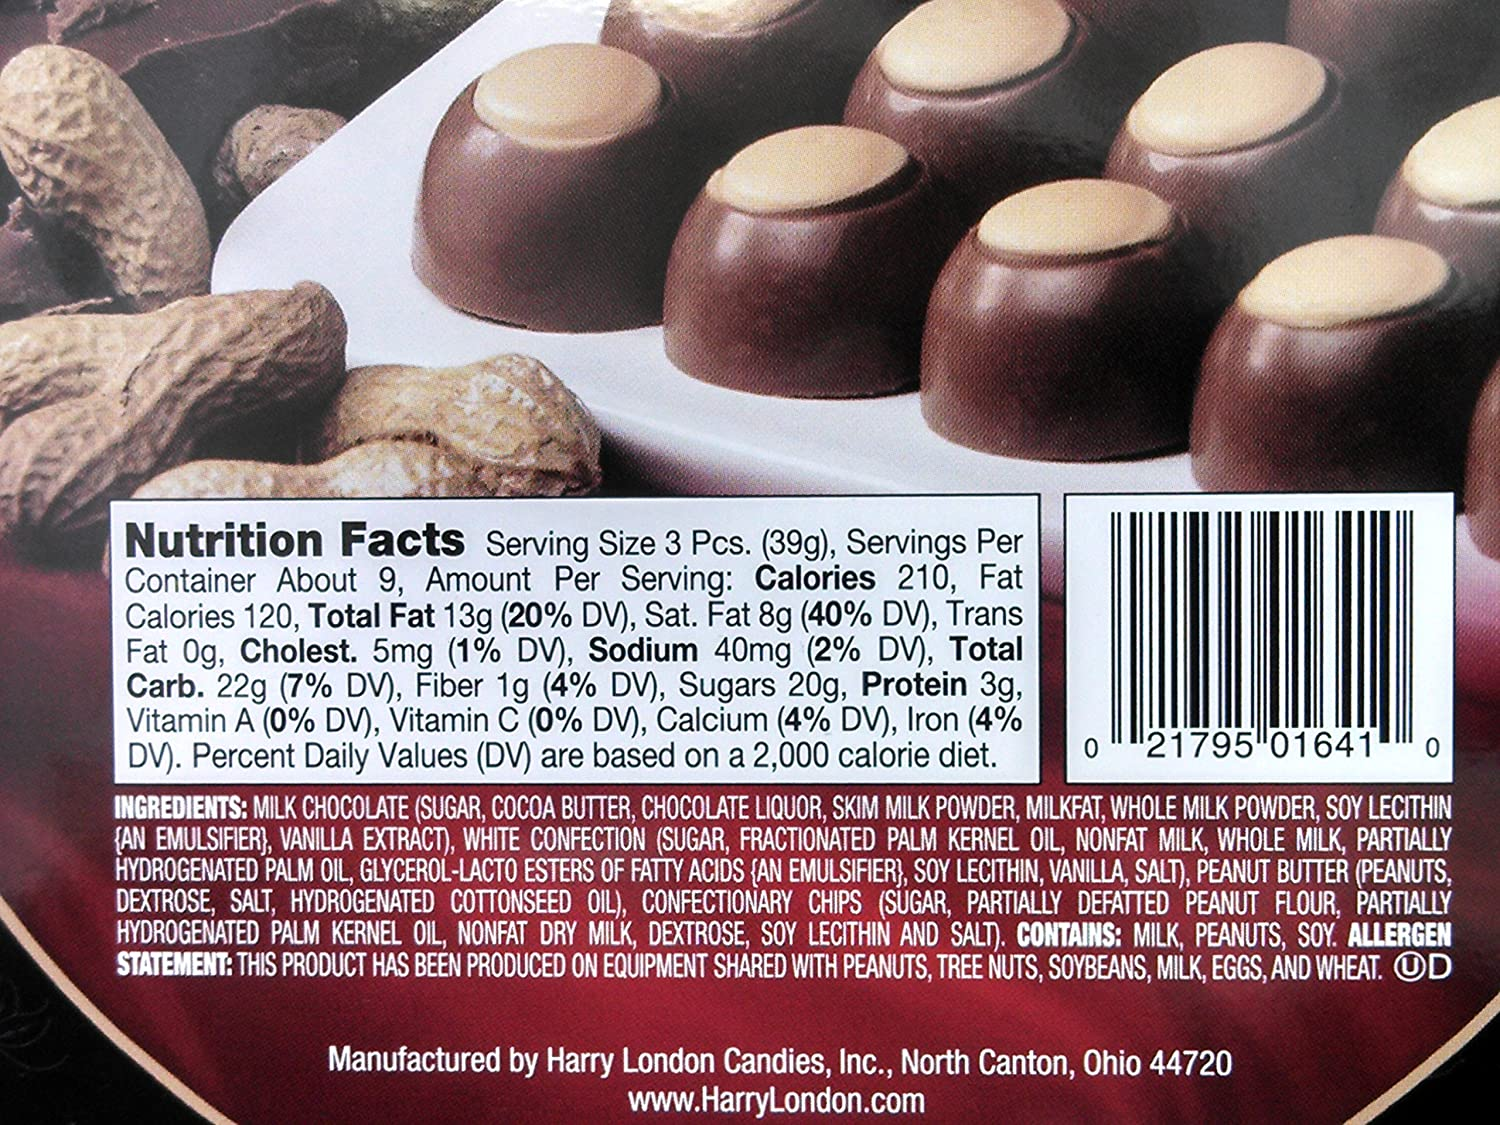 Amazon.com : Harry London Gourmet Milk Chocolate & Peanut Butter ...